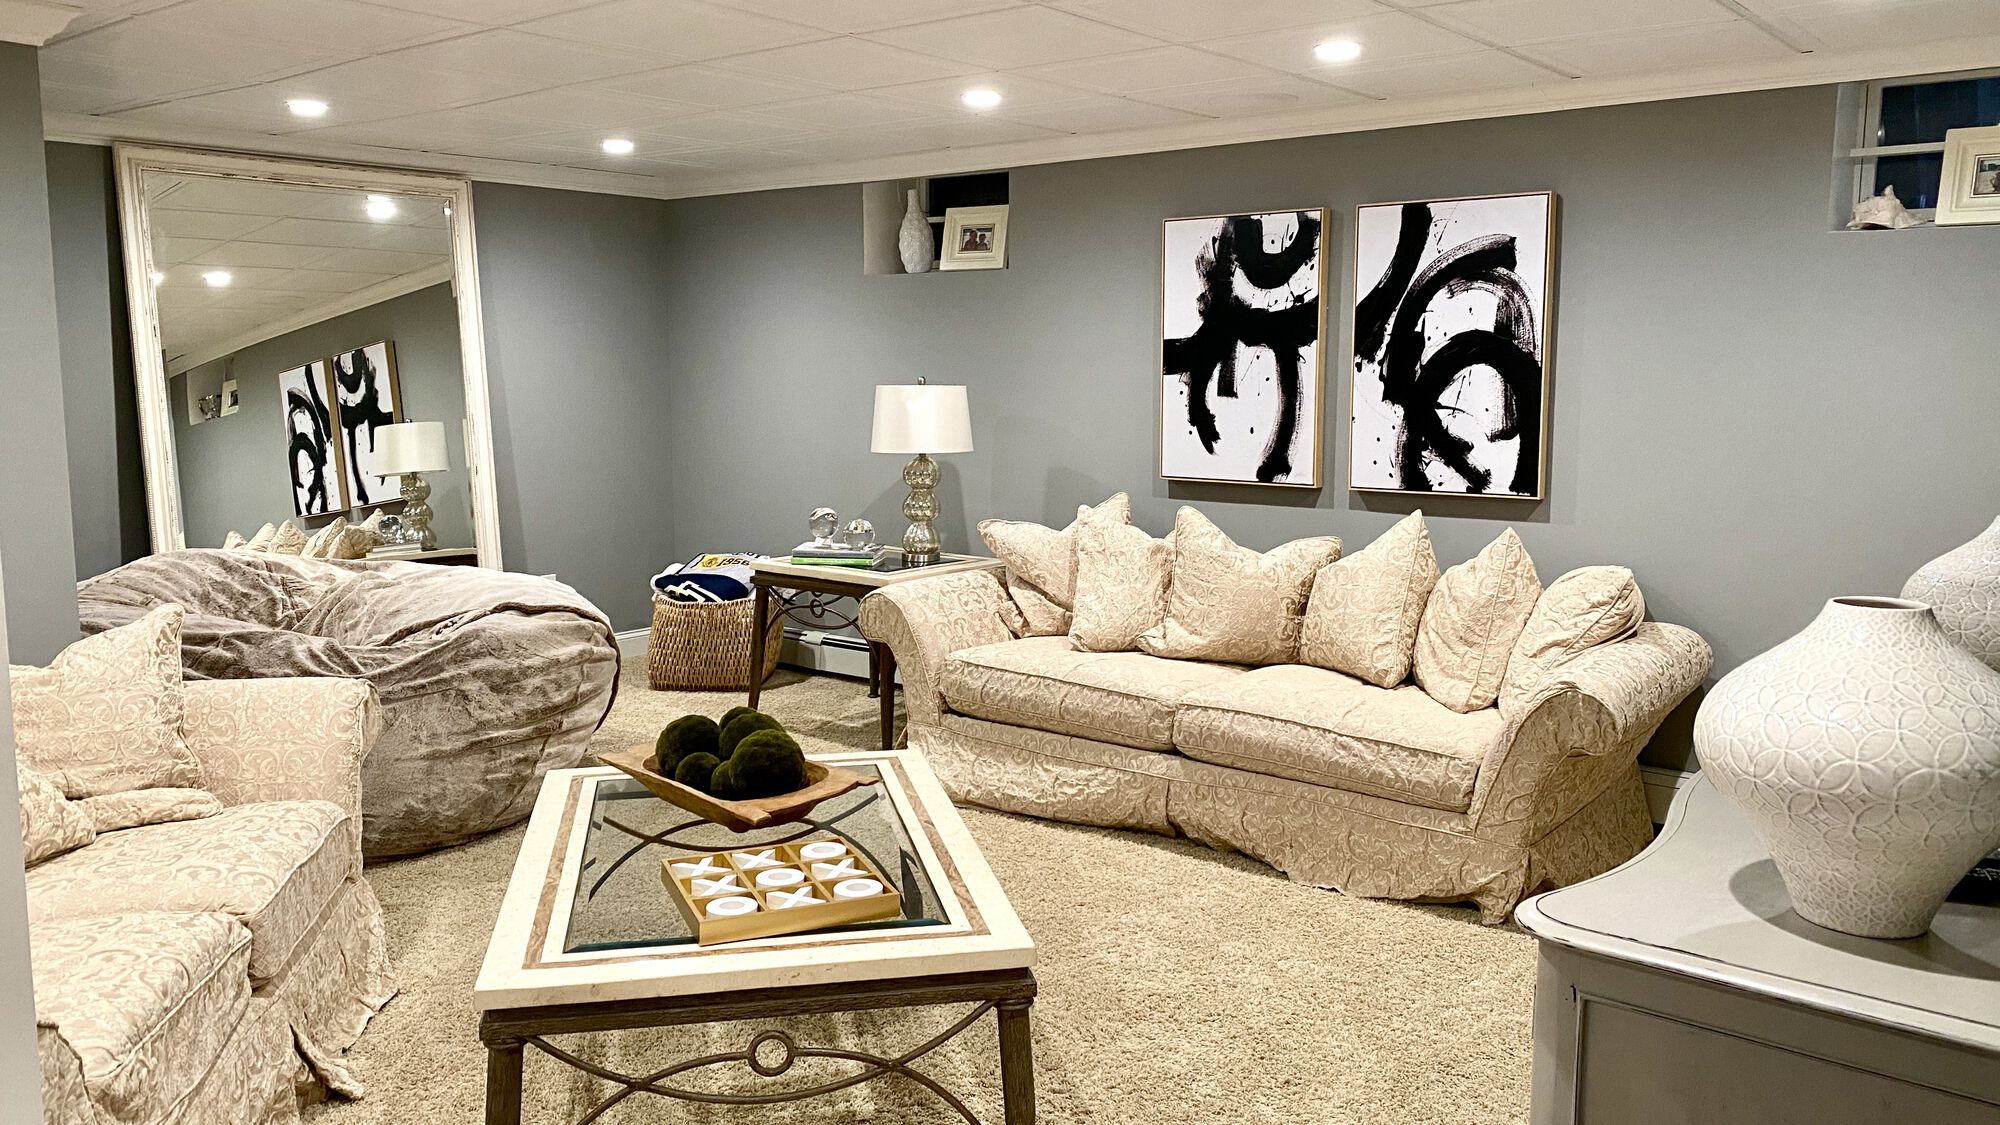 Finished Basement in Sparta, North Jersey